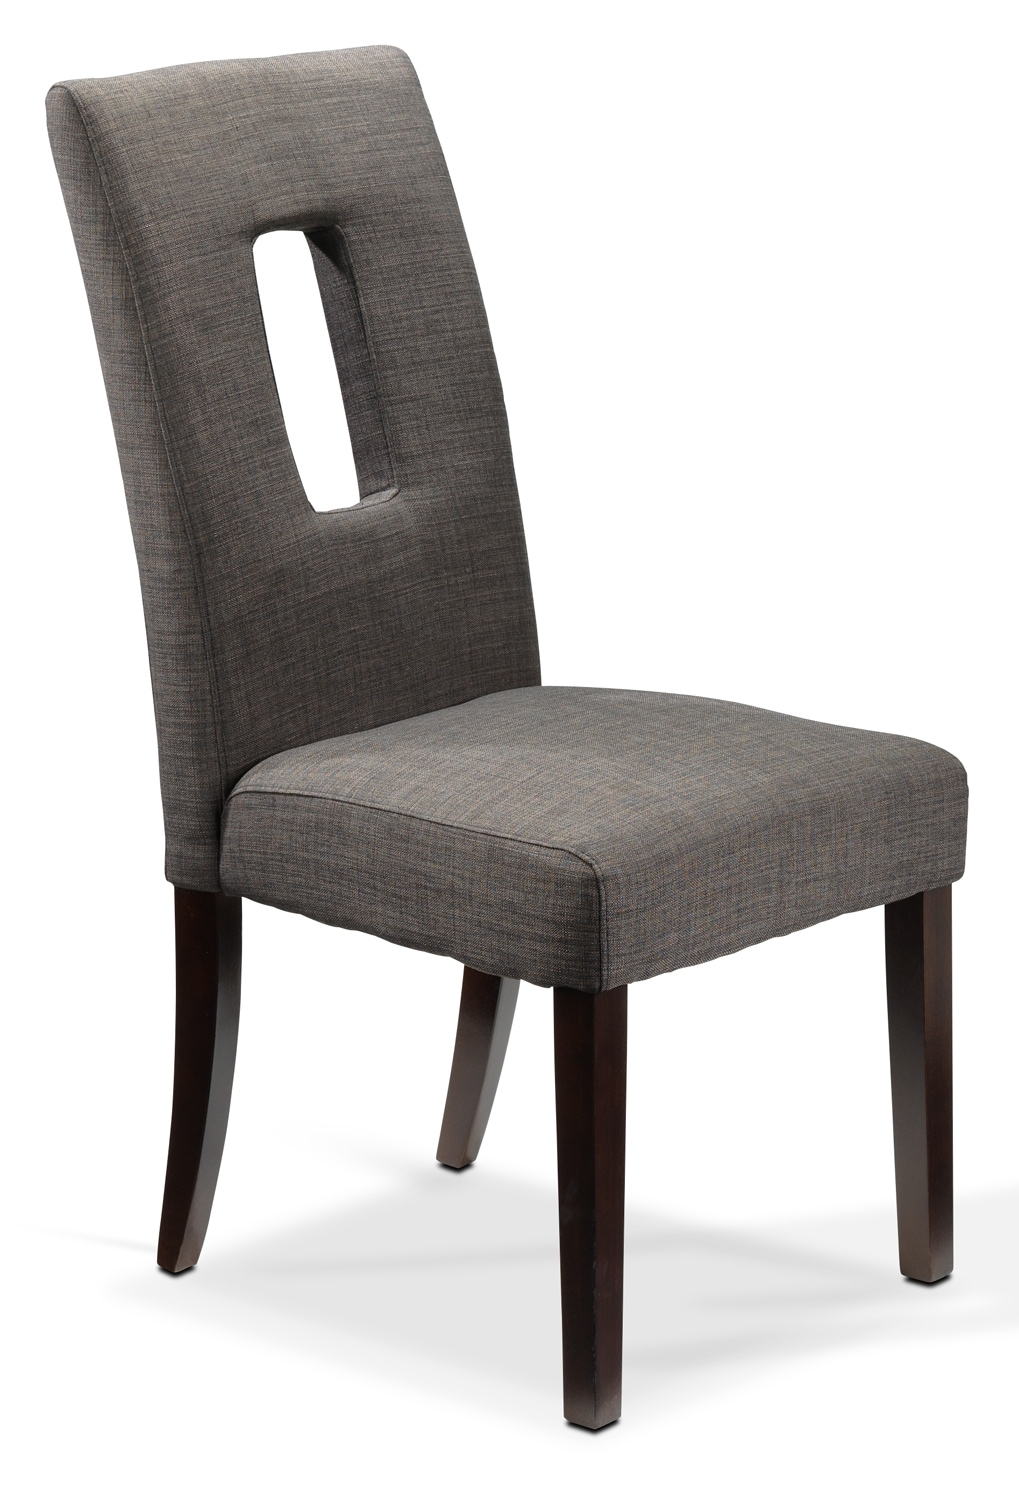 Casual chair dining chair pads cushions for Informal dining chairs